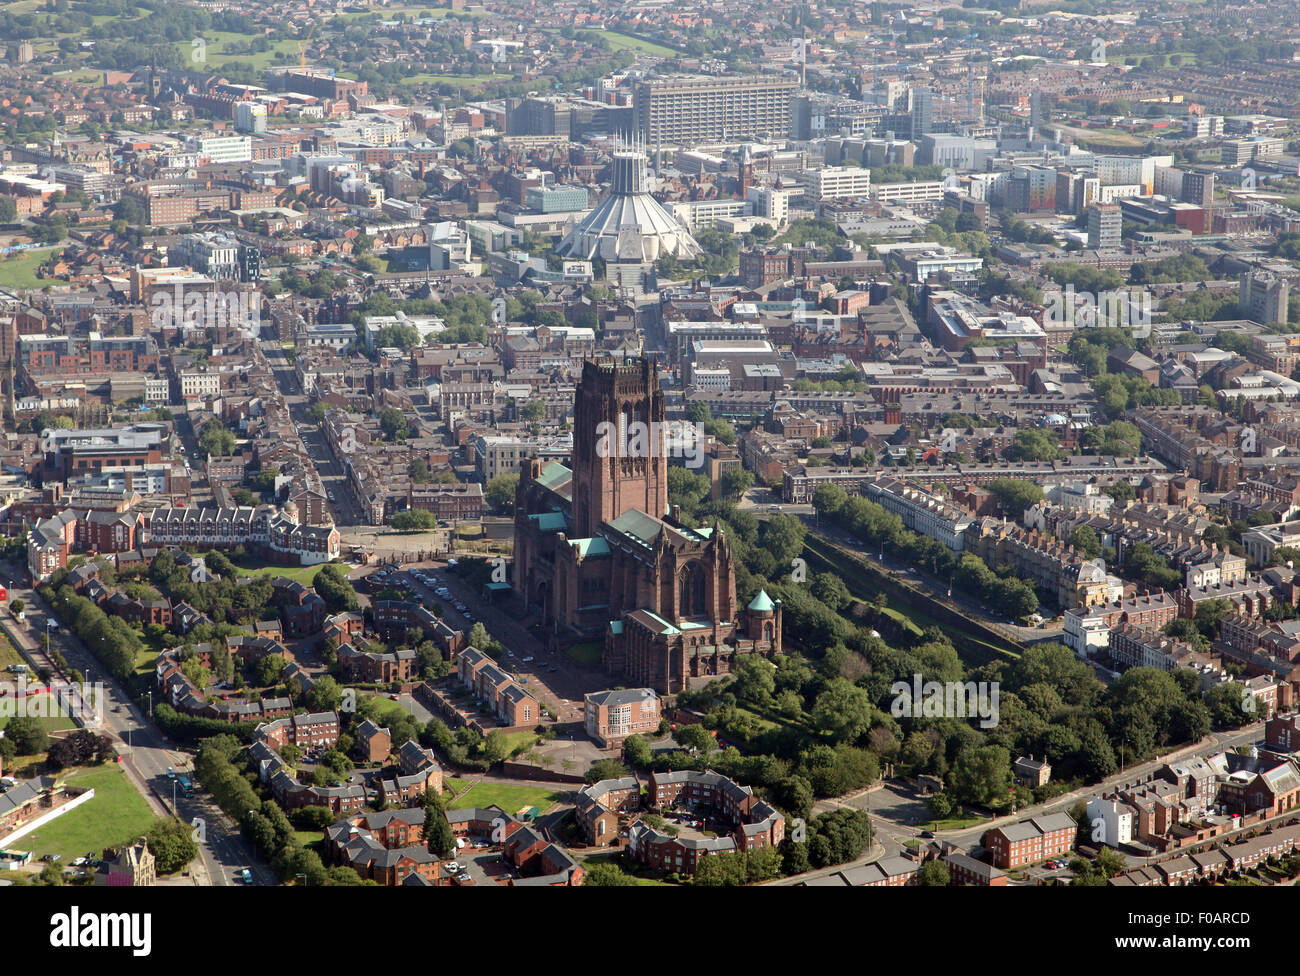 aerial view of Liverpool Cathedrals: Anglican and Catholic Metropolitan Cathedral of Christ the King, UK - Stock Image